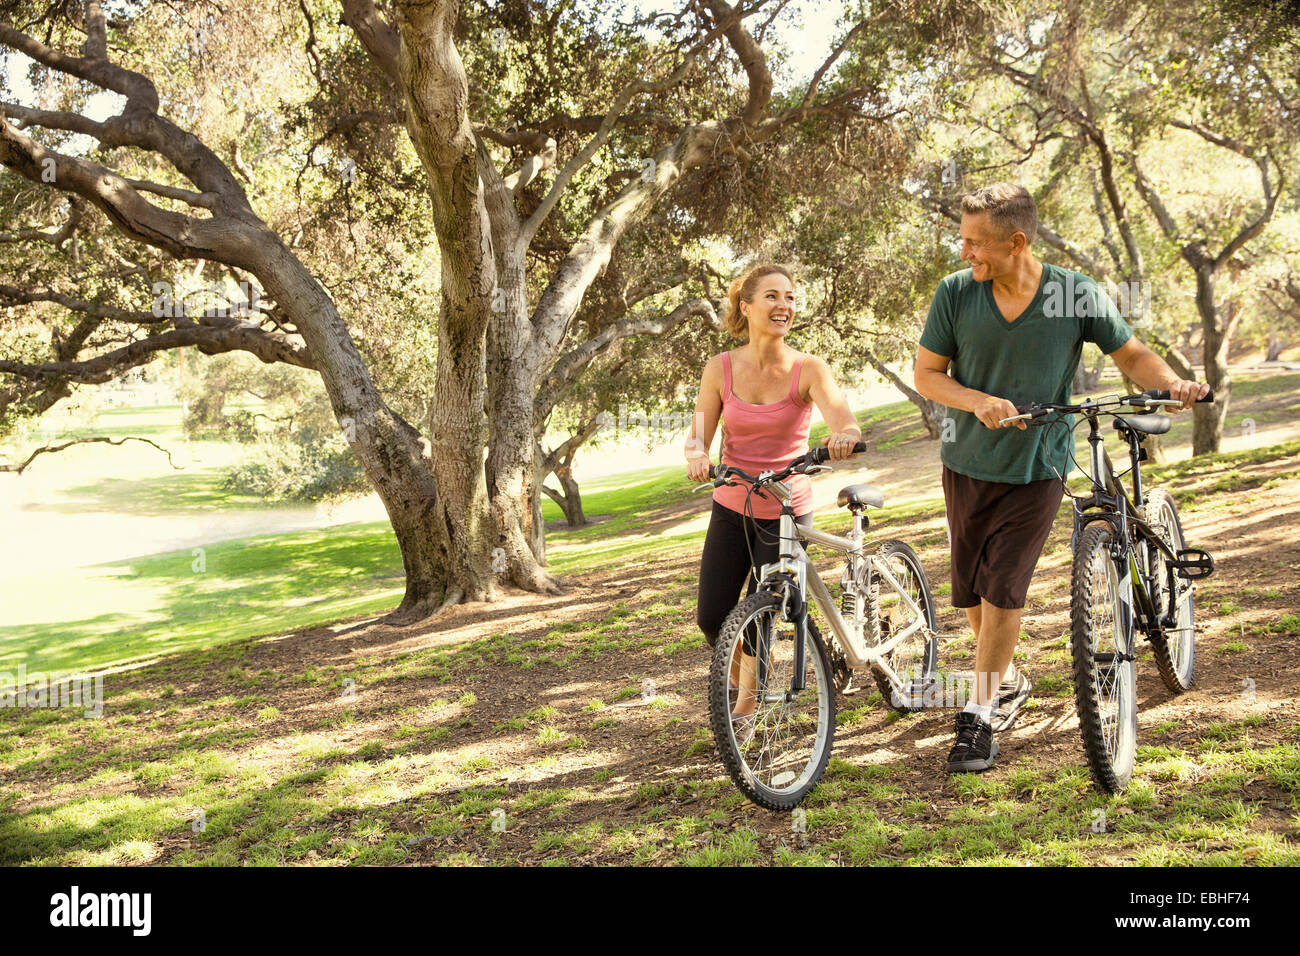 Mature couple chatting and pushing bicycles through park - Stock Image